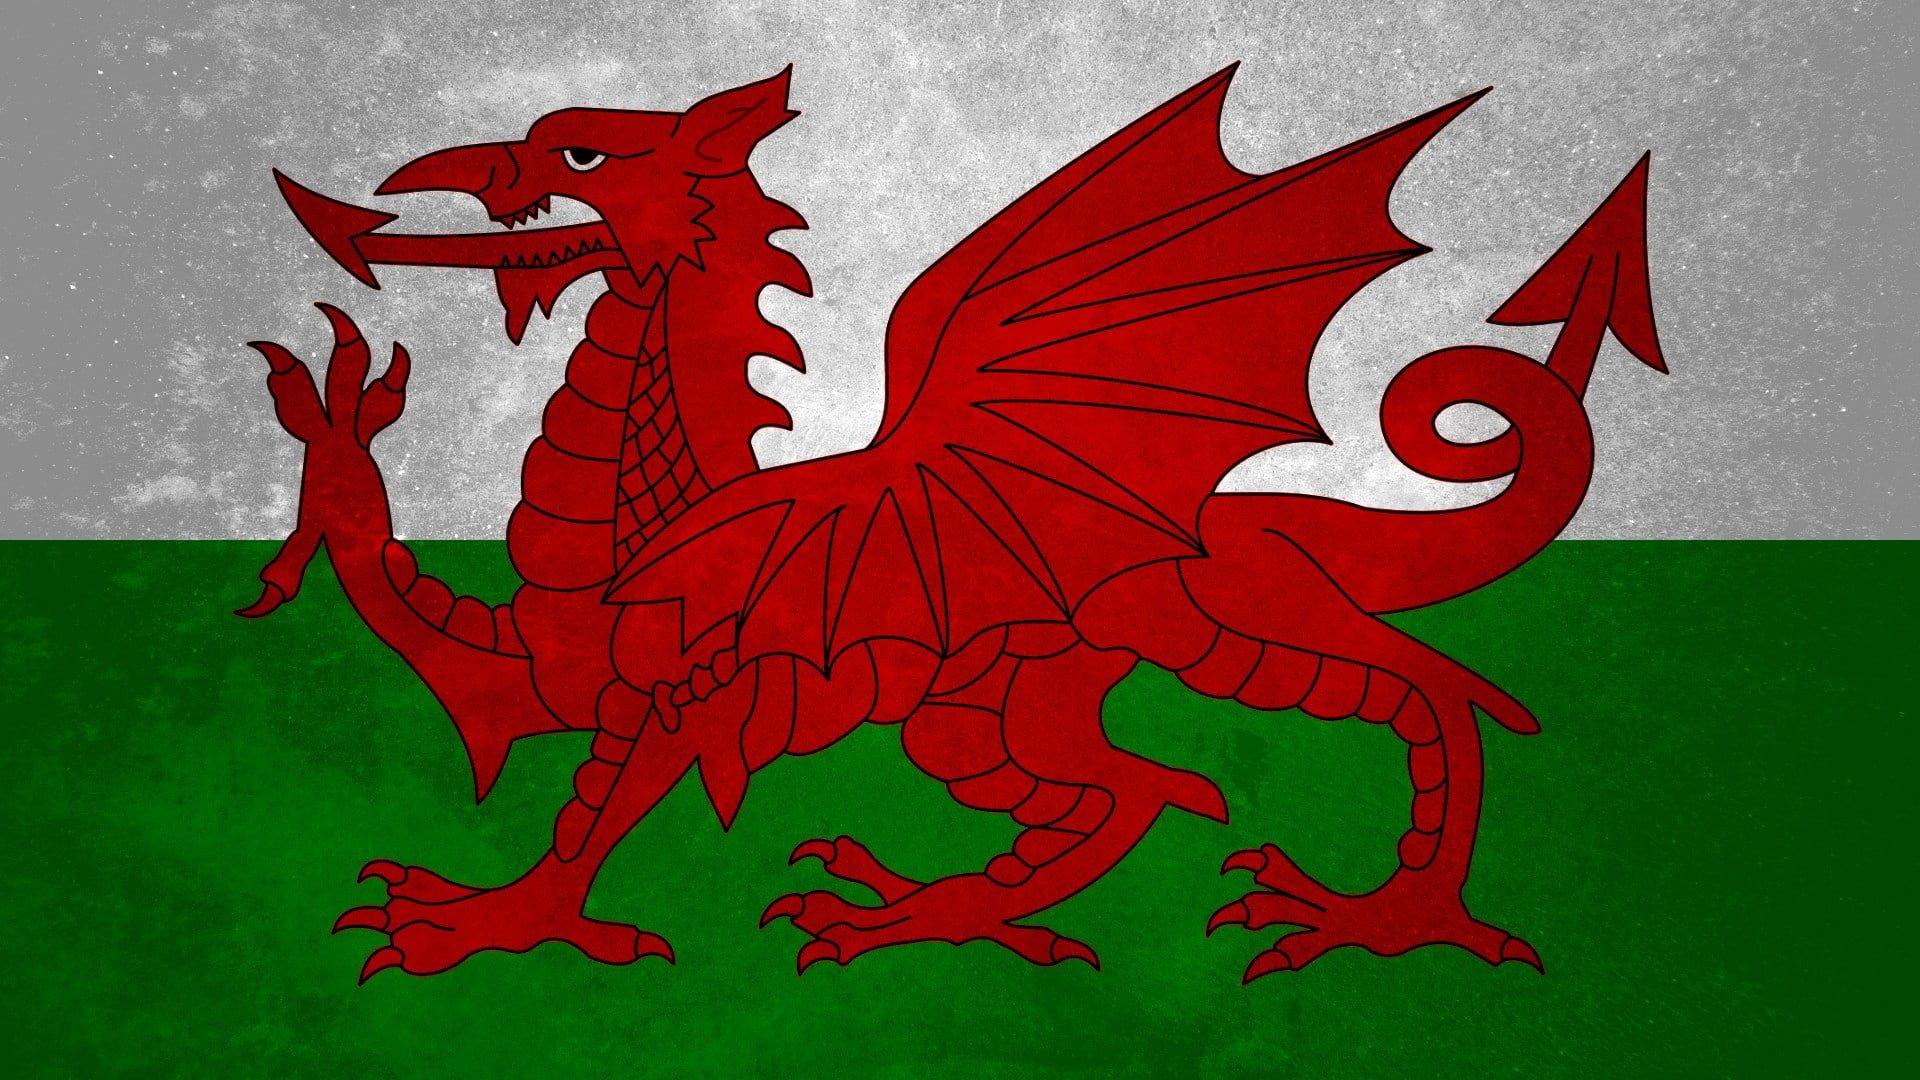 HD wallpaper Wales flag Wallpaper Flare 1920x1080